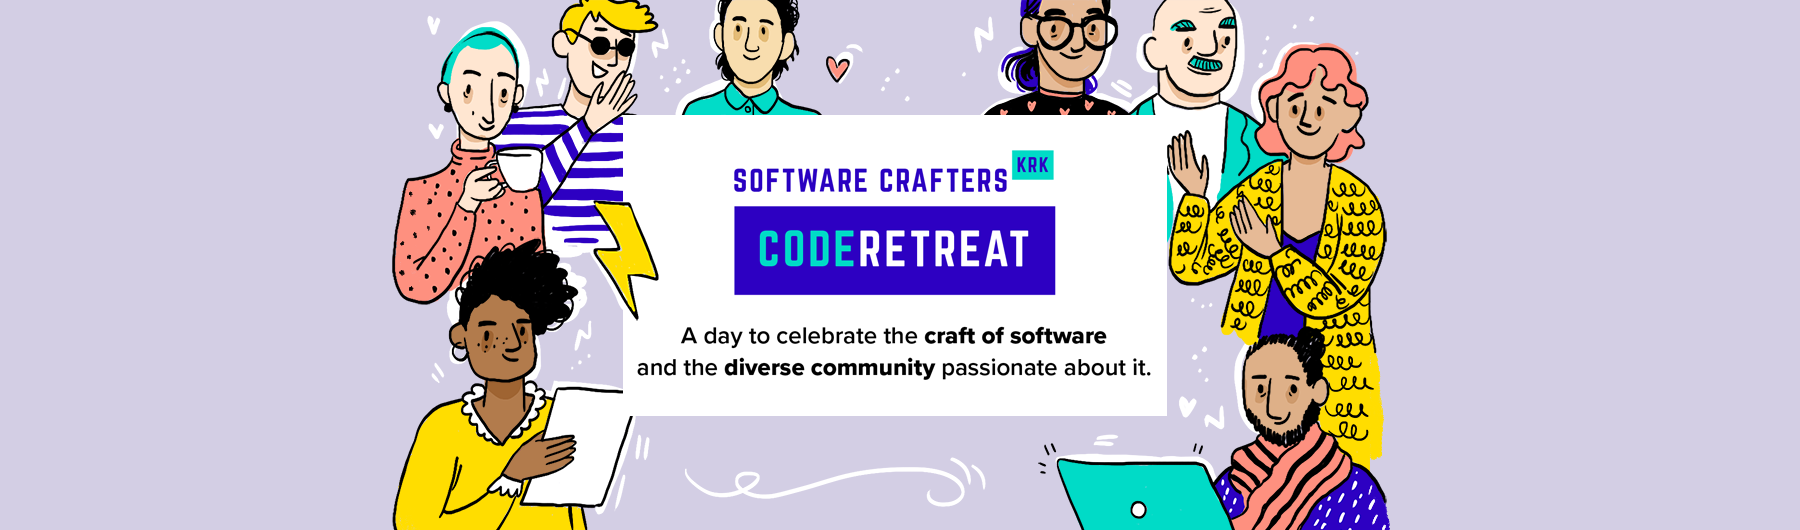 Global Day of Coderetreat in Kraków 2019